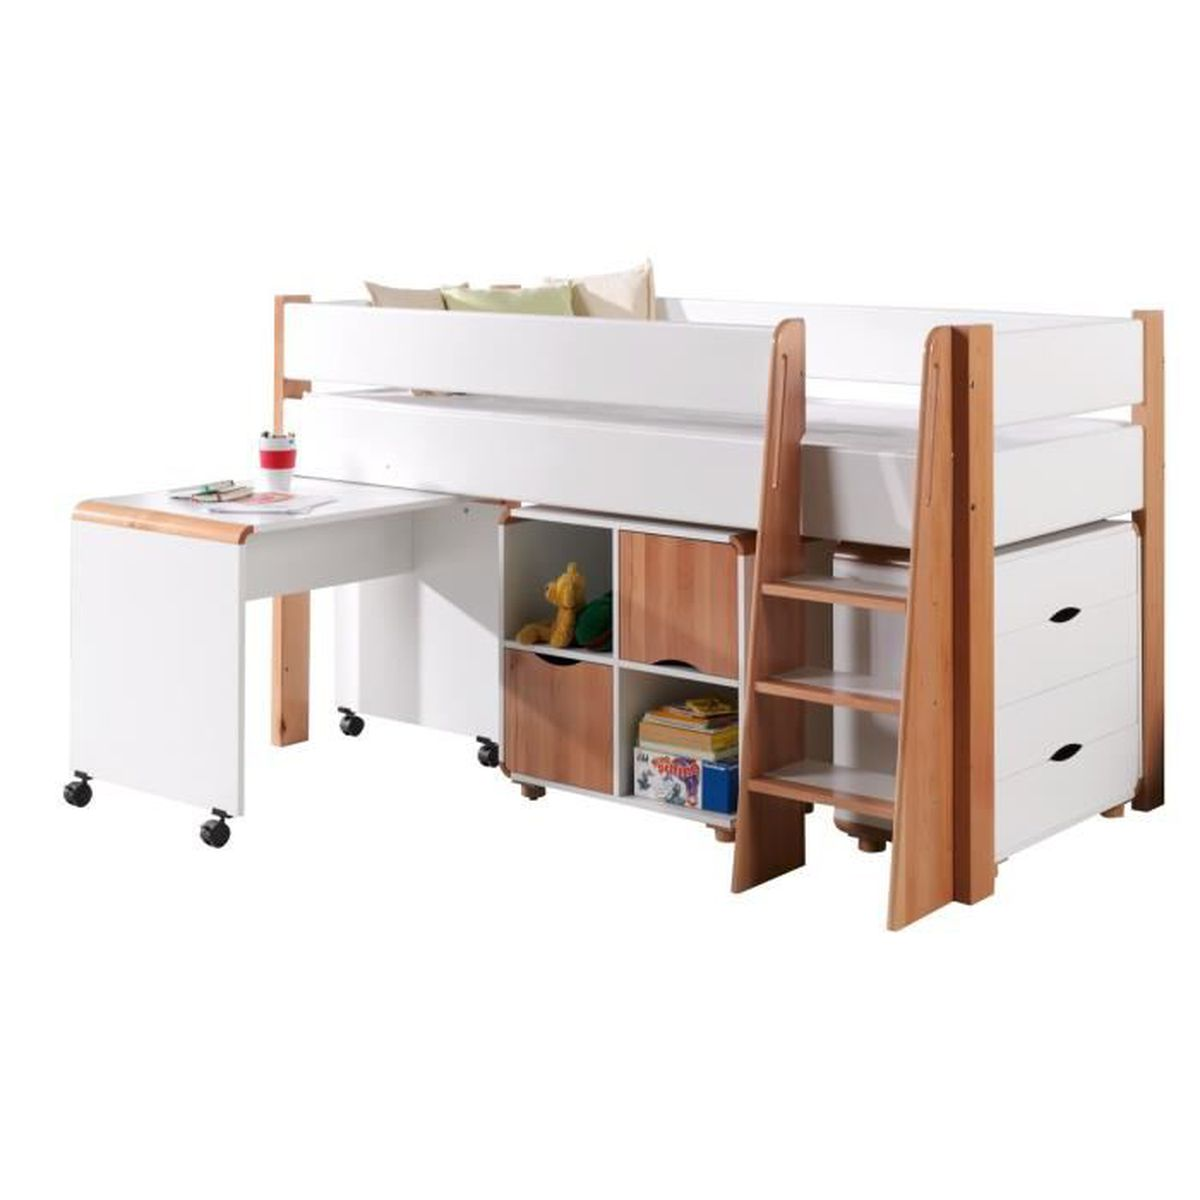 lit mi hauteur combin 90x20 cm en bois h tre massif mdf coloris blanc blanc achat vente. Black Bedroom Furniture Sets. Home Design Ideas